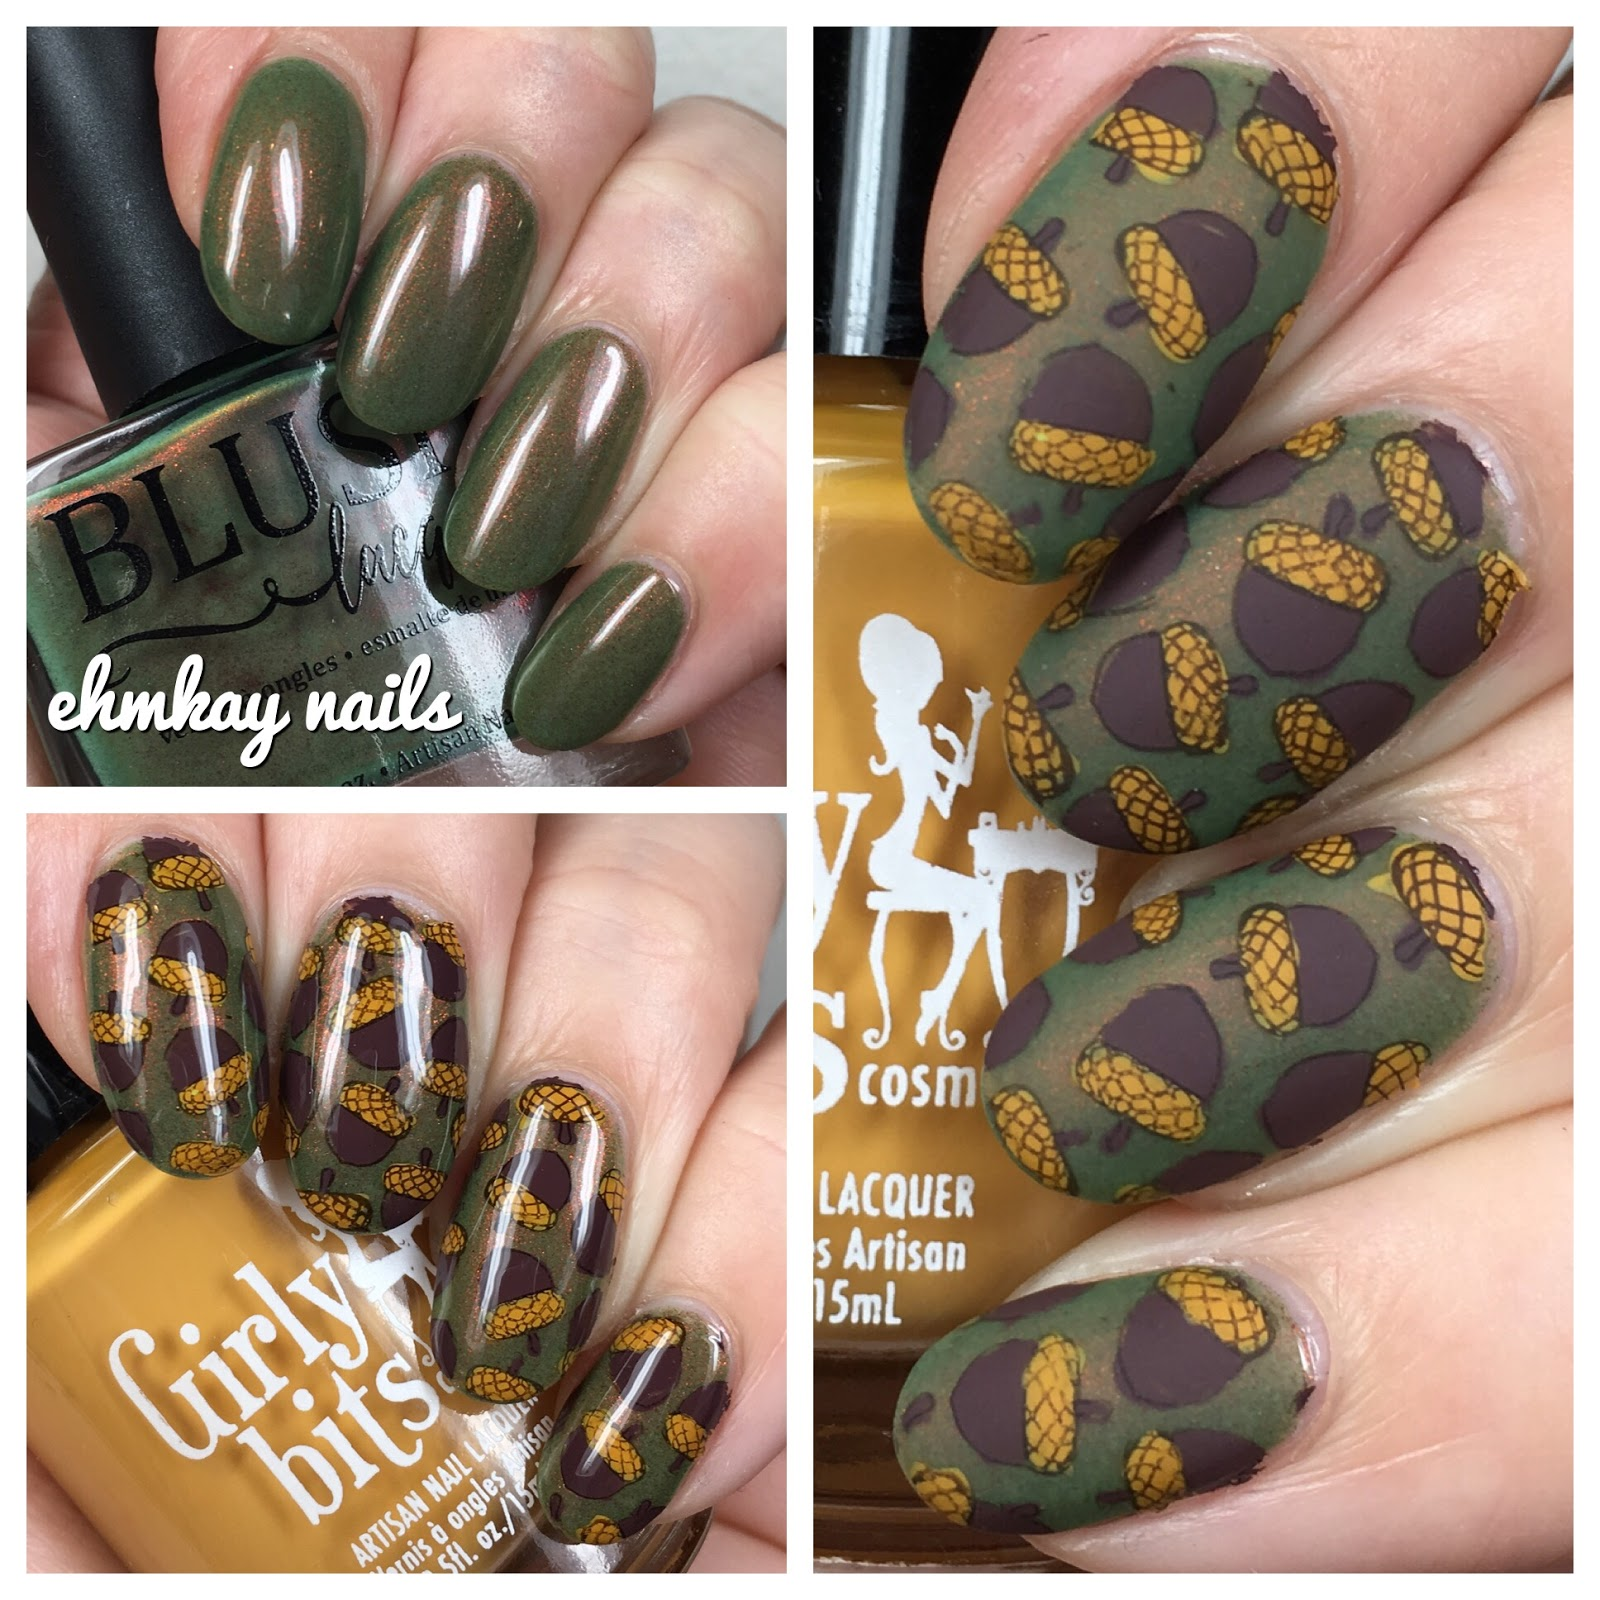 ehmkay nails: Acorn Nail Art: Reverse Stamping with Girly Bits over ...